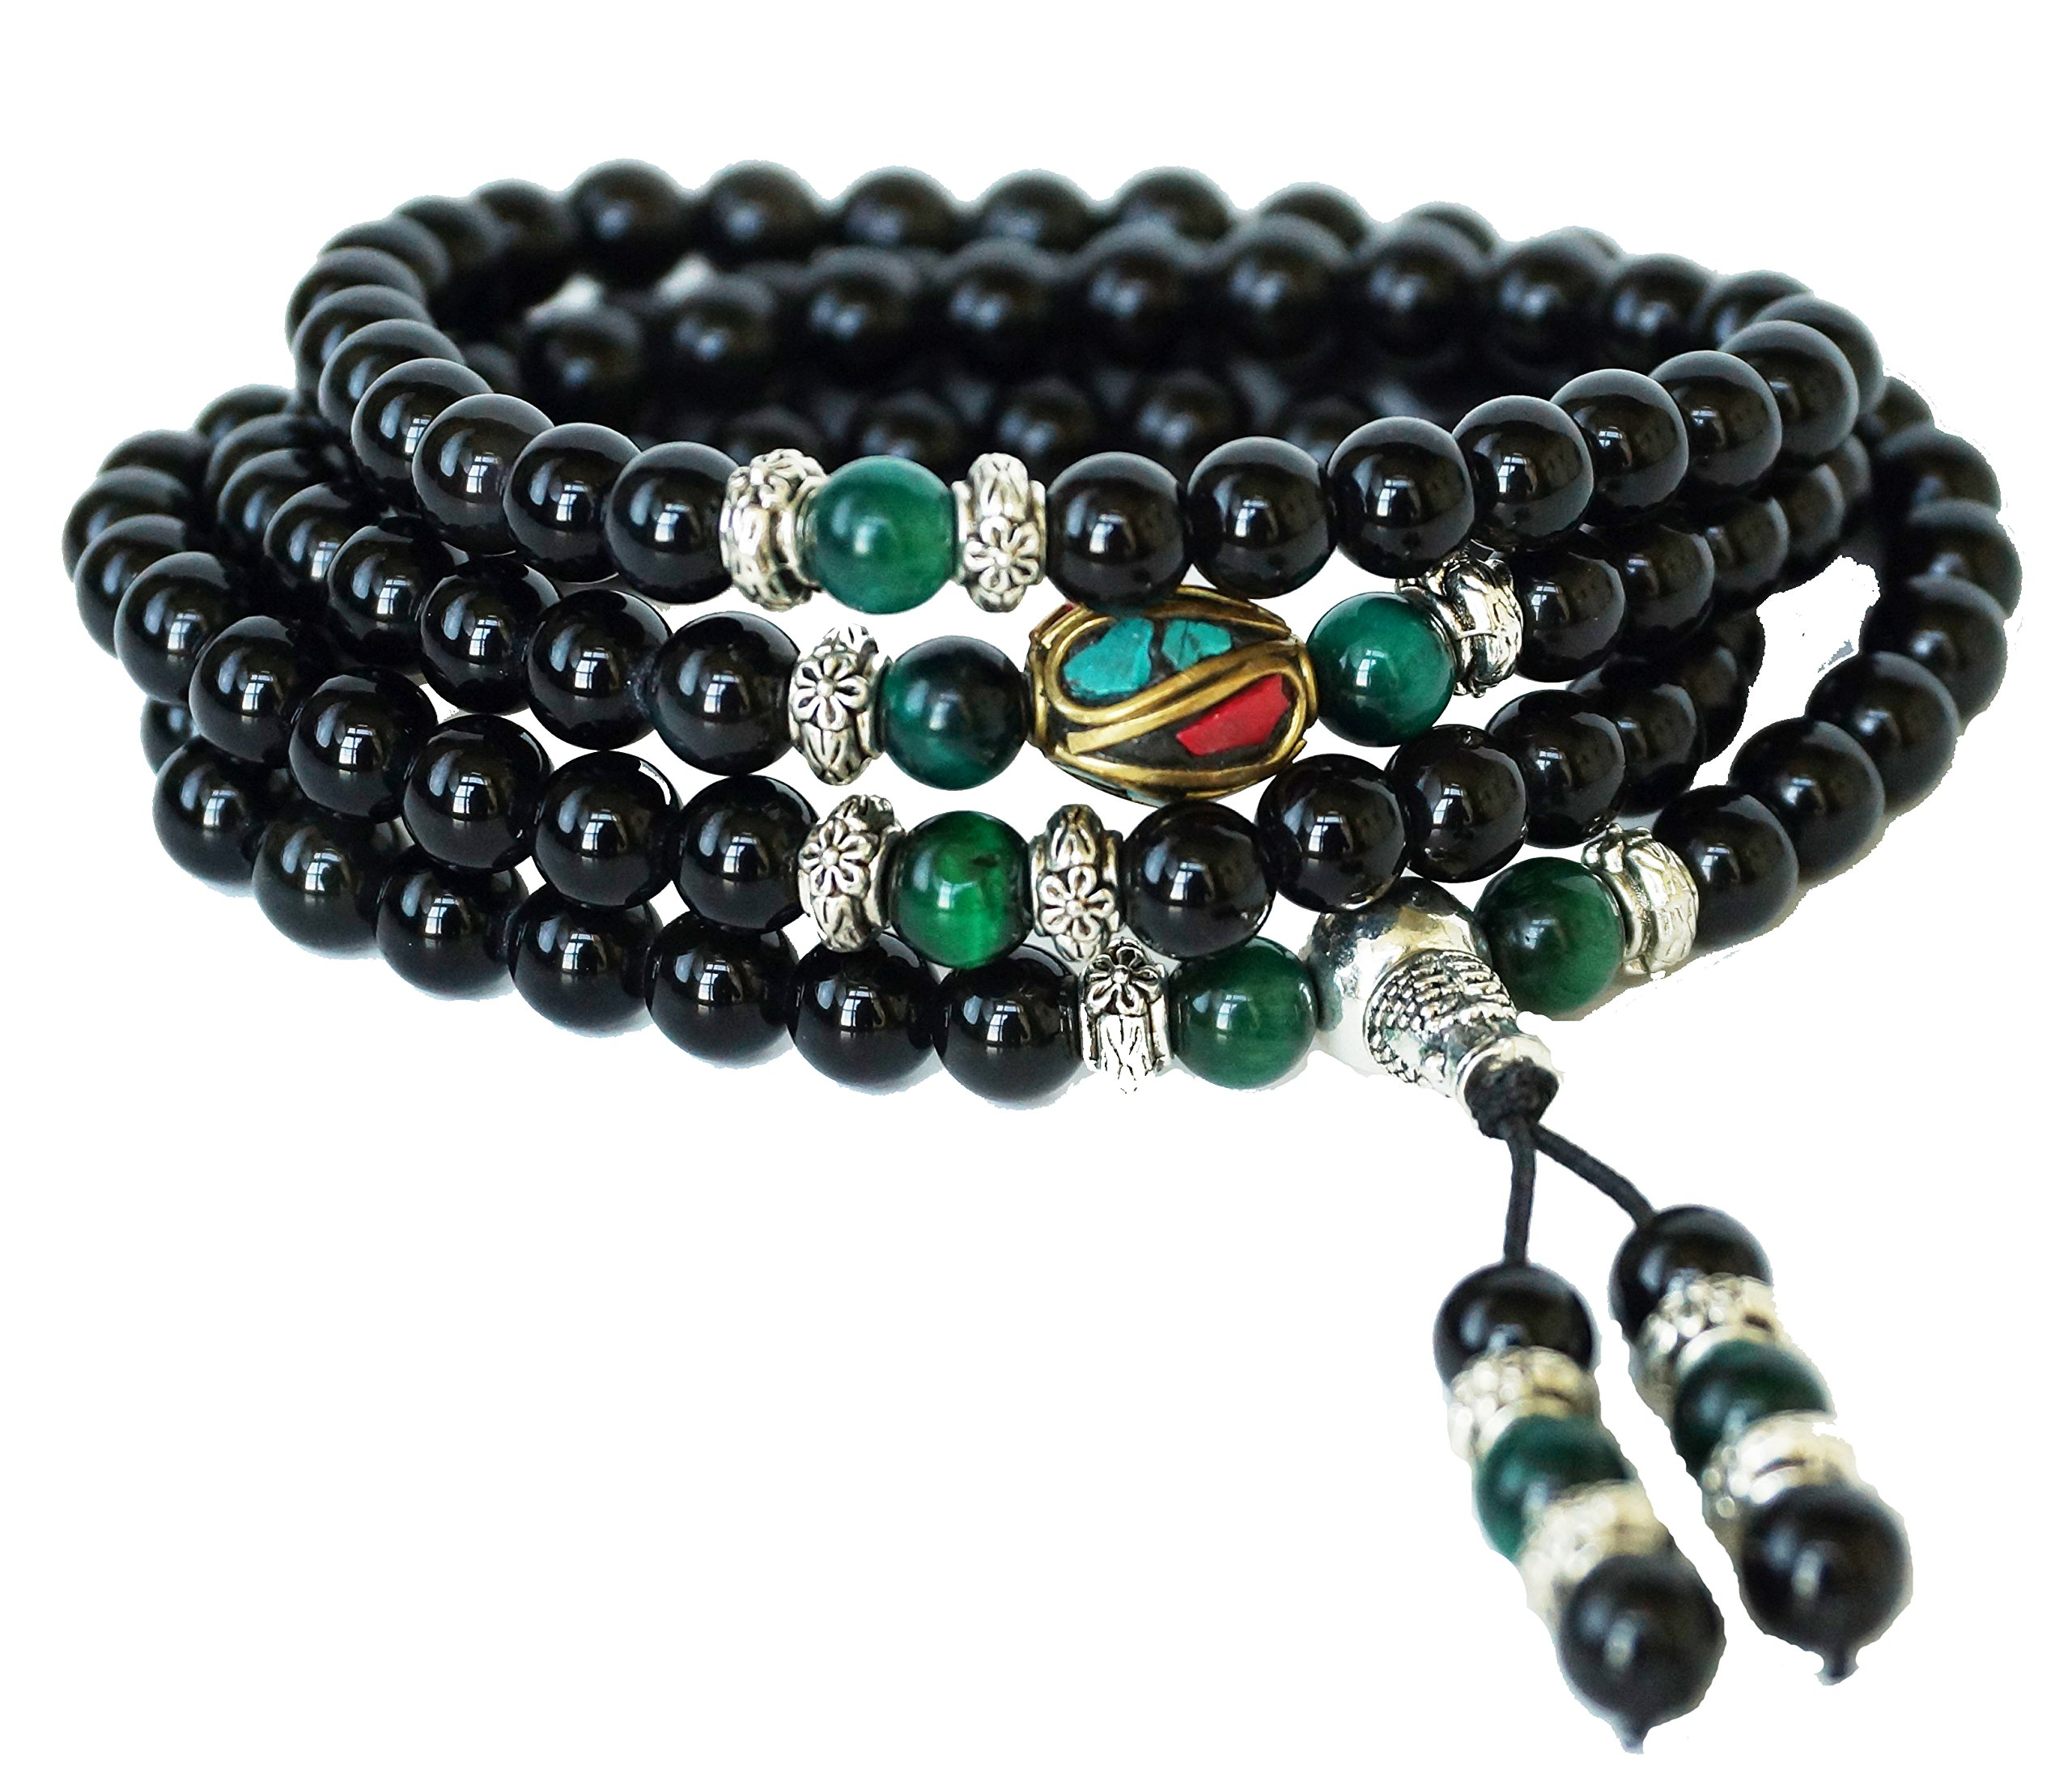 storing moon crescent dsc lush product mala beads